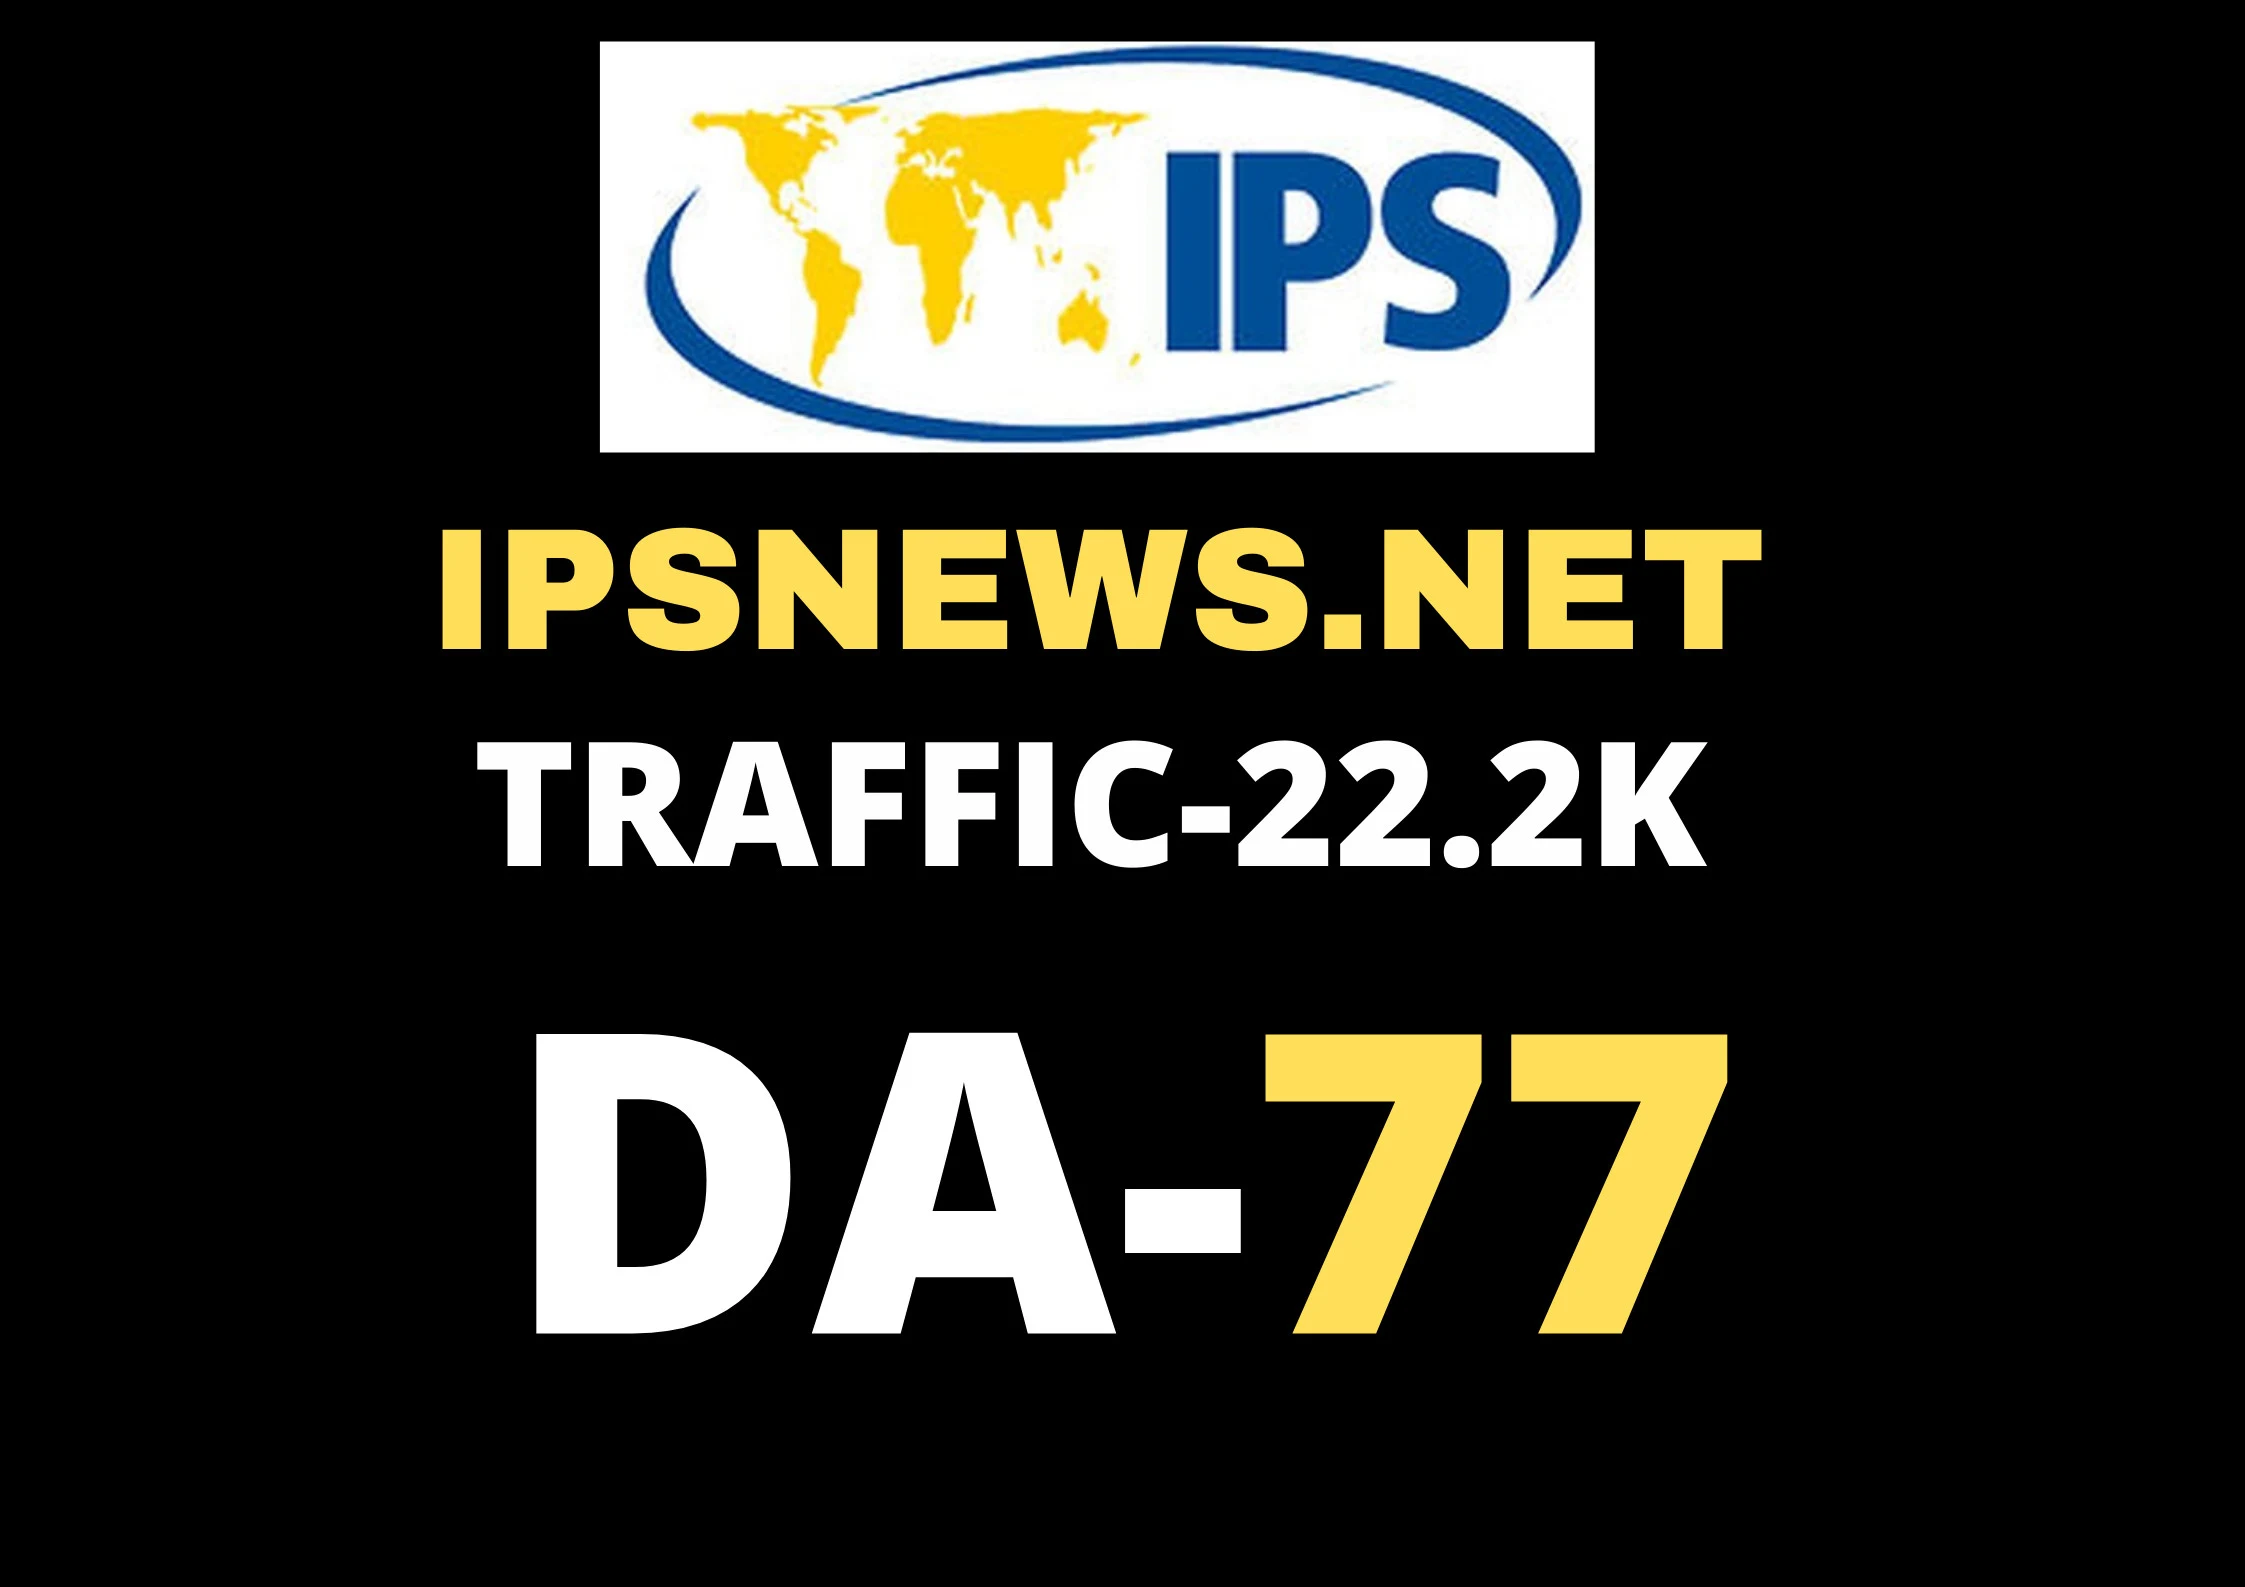 Guest post on my ipsnews. net Permanent Backlink DA78